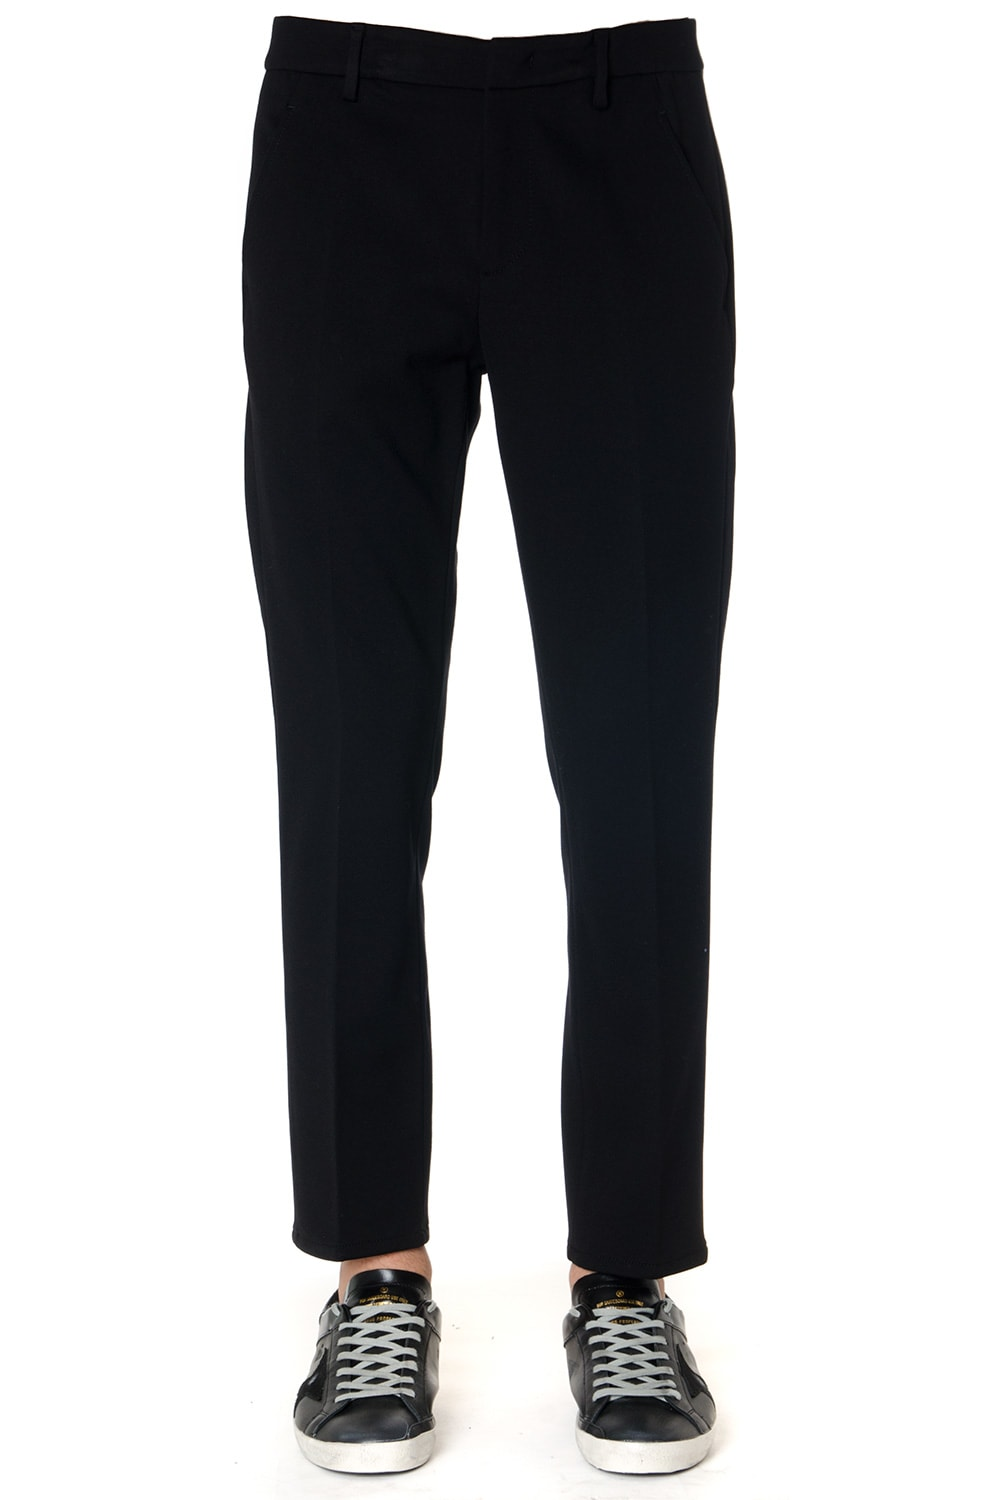 Dondup Black Tailored Trousers